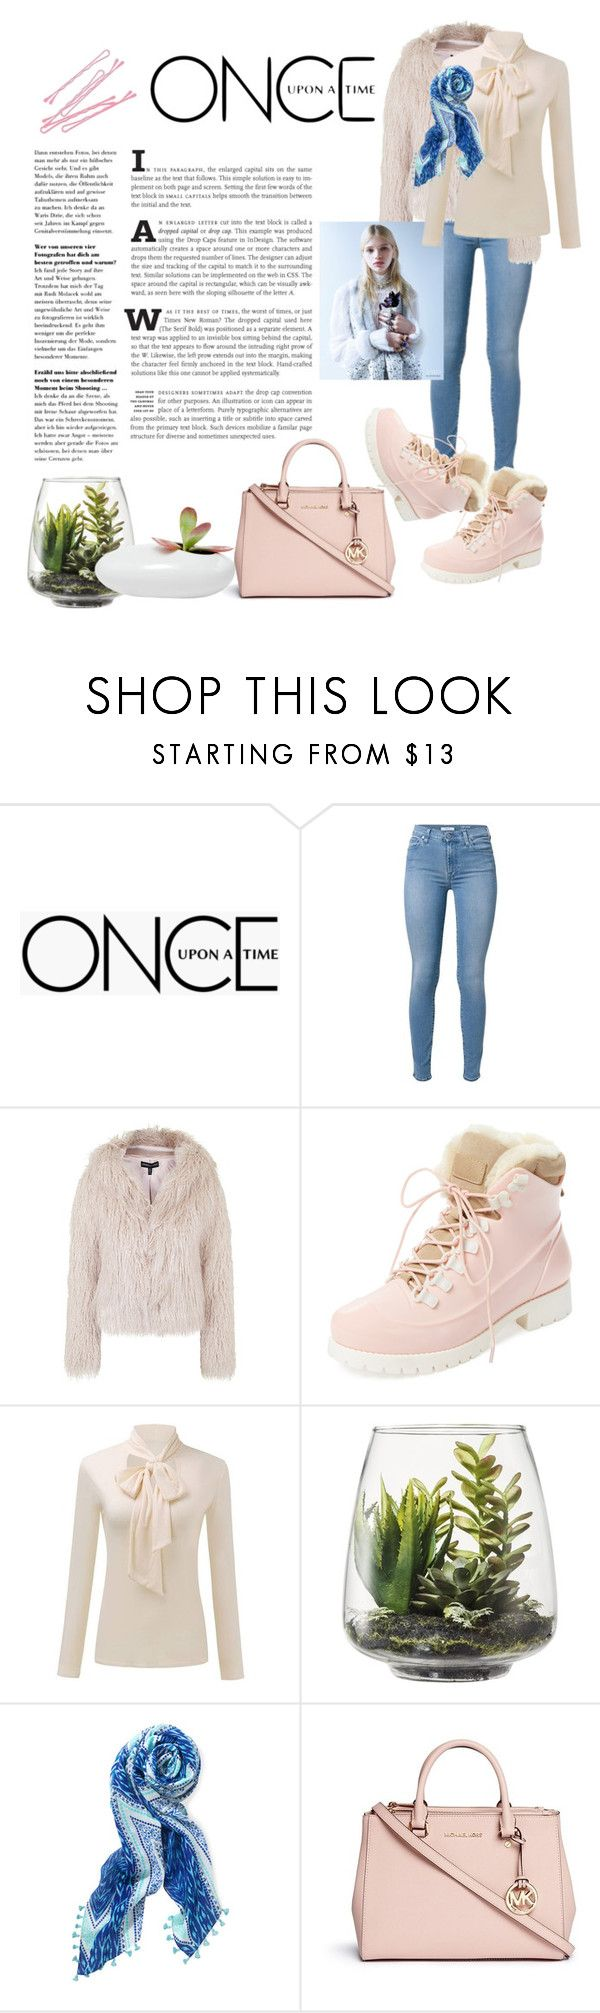 """""""Serene"""" by megalyssa ❤ liked on Polyvore featuring Once Upon a Time, Topshop, Australia Luxe Collective, Threshold, Stella & Dot, BOBBY, Michael Kors, Dot & Bo, Pink and sandrose"""